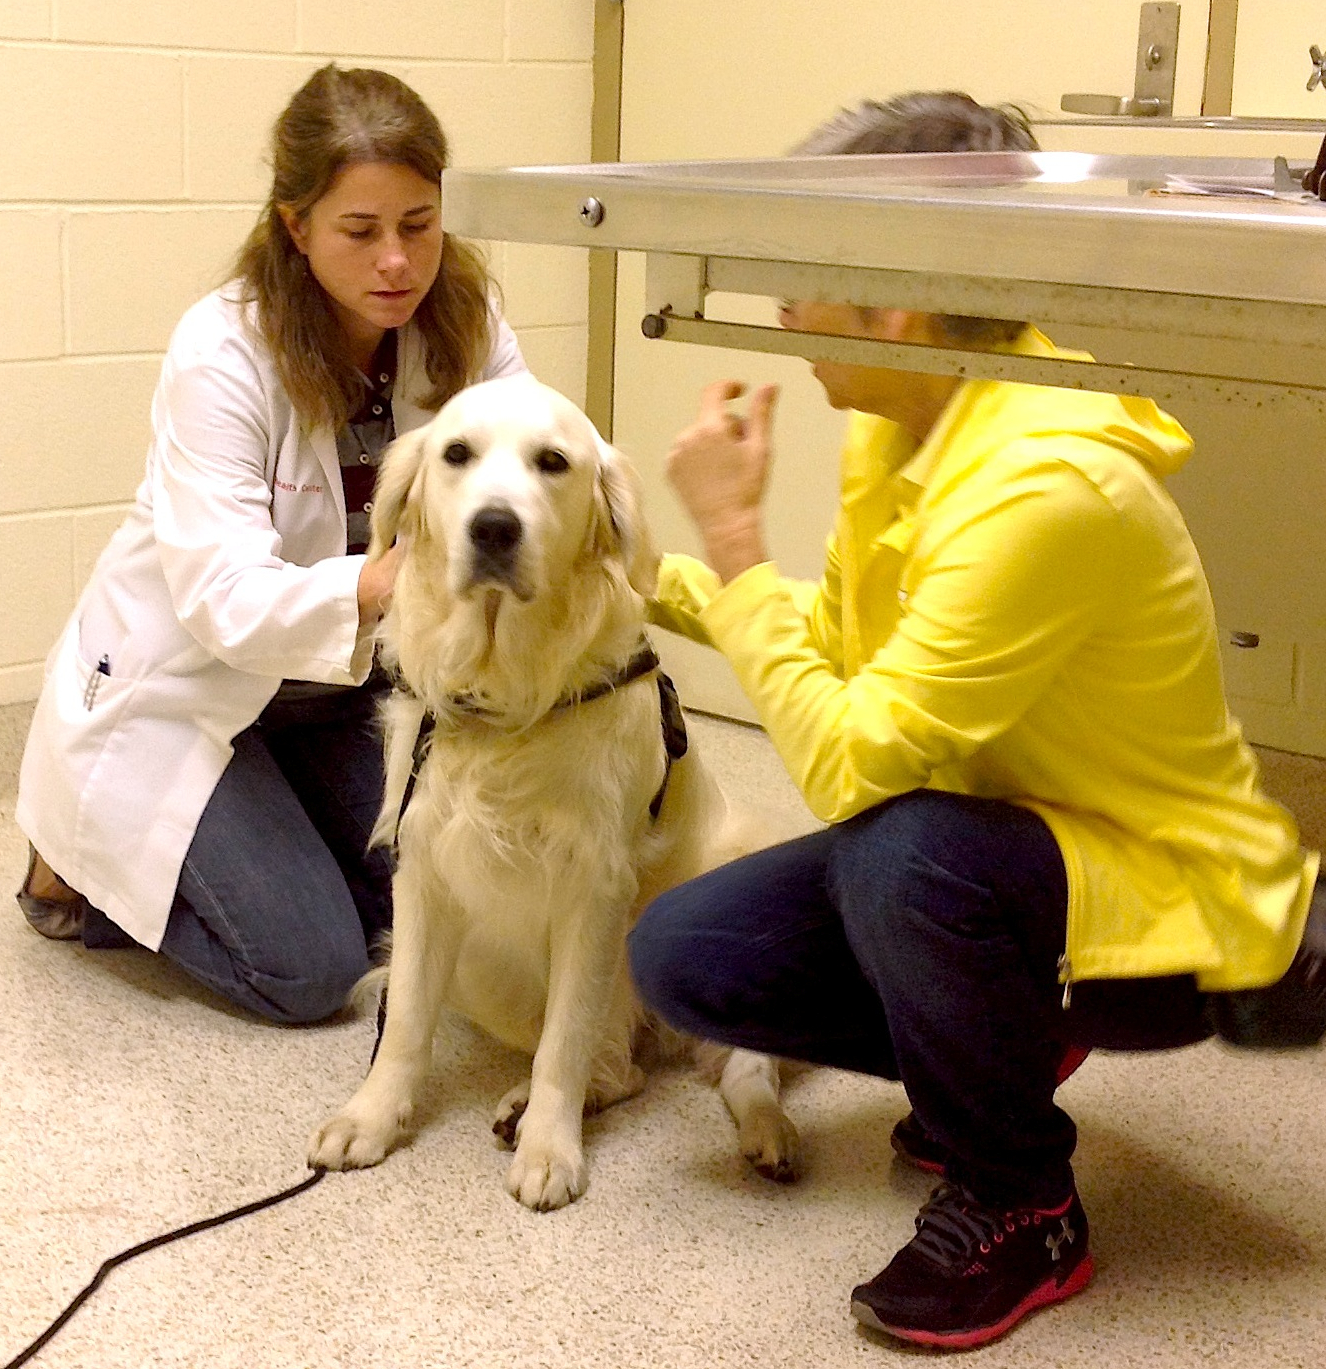 Back to MS State Vet School Hospital: Shai sees Specialist | Shai